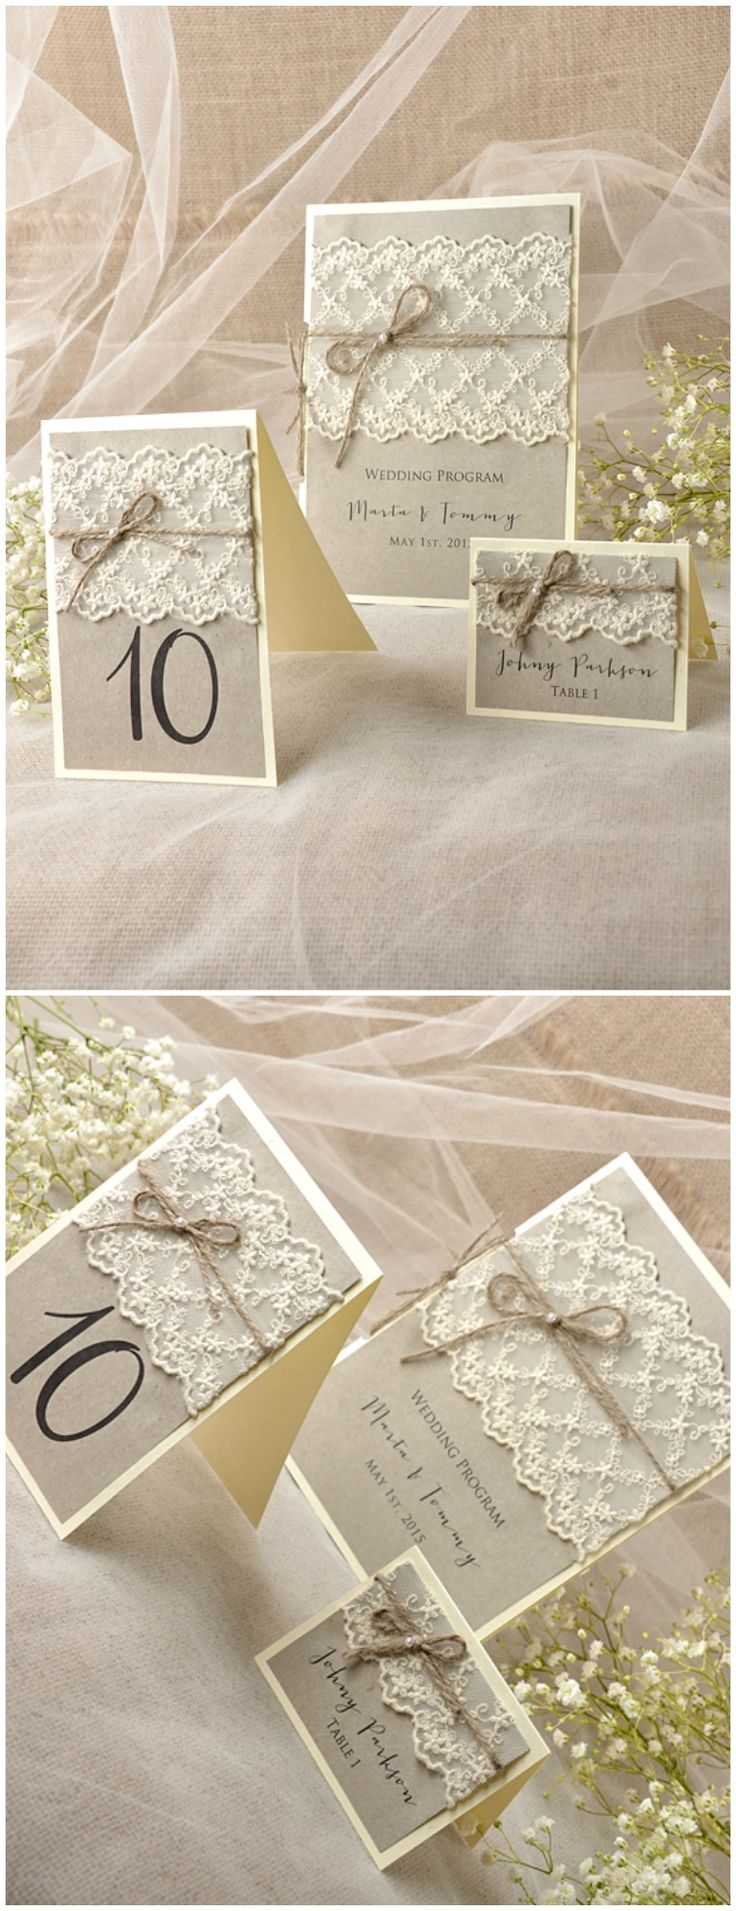 Rustic Lace Wedding Stationery #weddingideas #rustic #wedding #lace #romantic #calligraphy #eco #ecofriendly